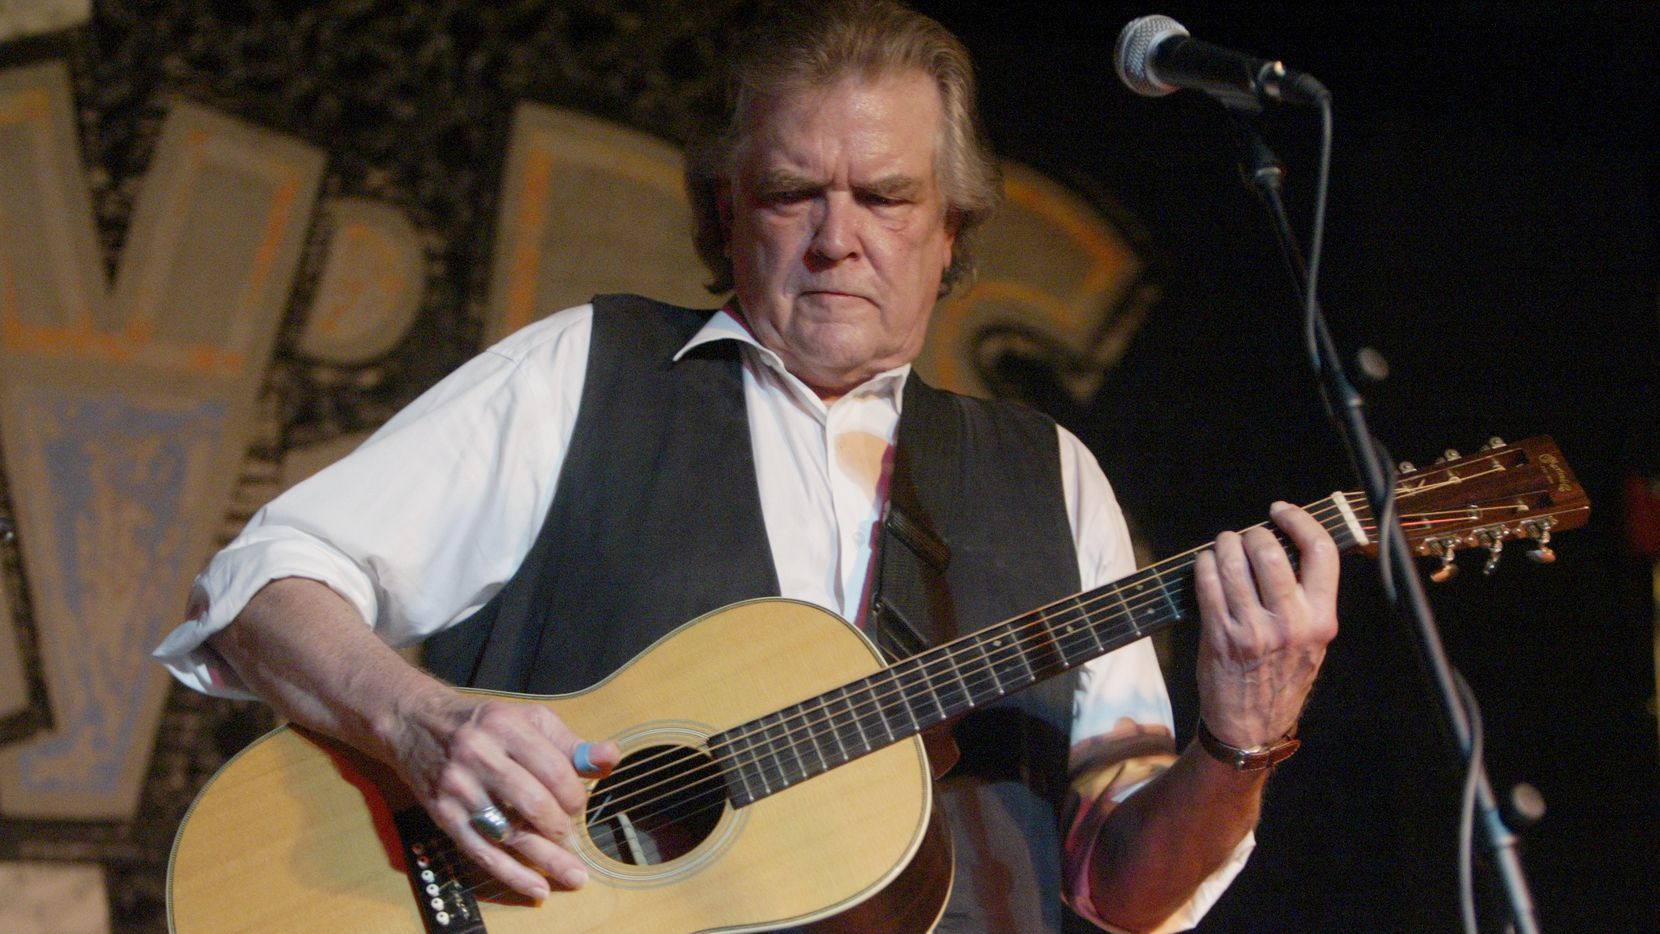 Guy Clark performs at Poor David's Pub during the opening night at the club's new site on South Lamar.